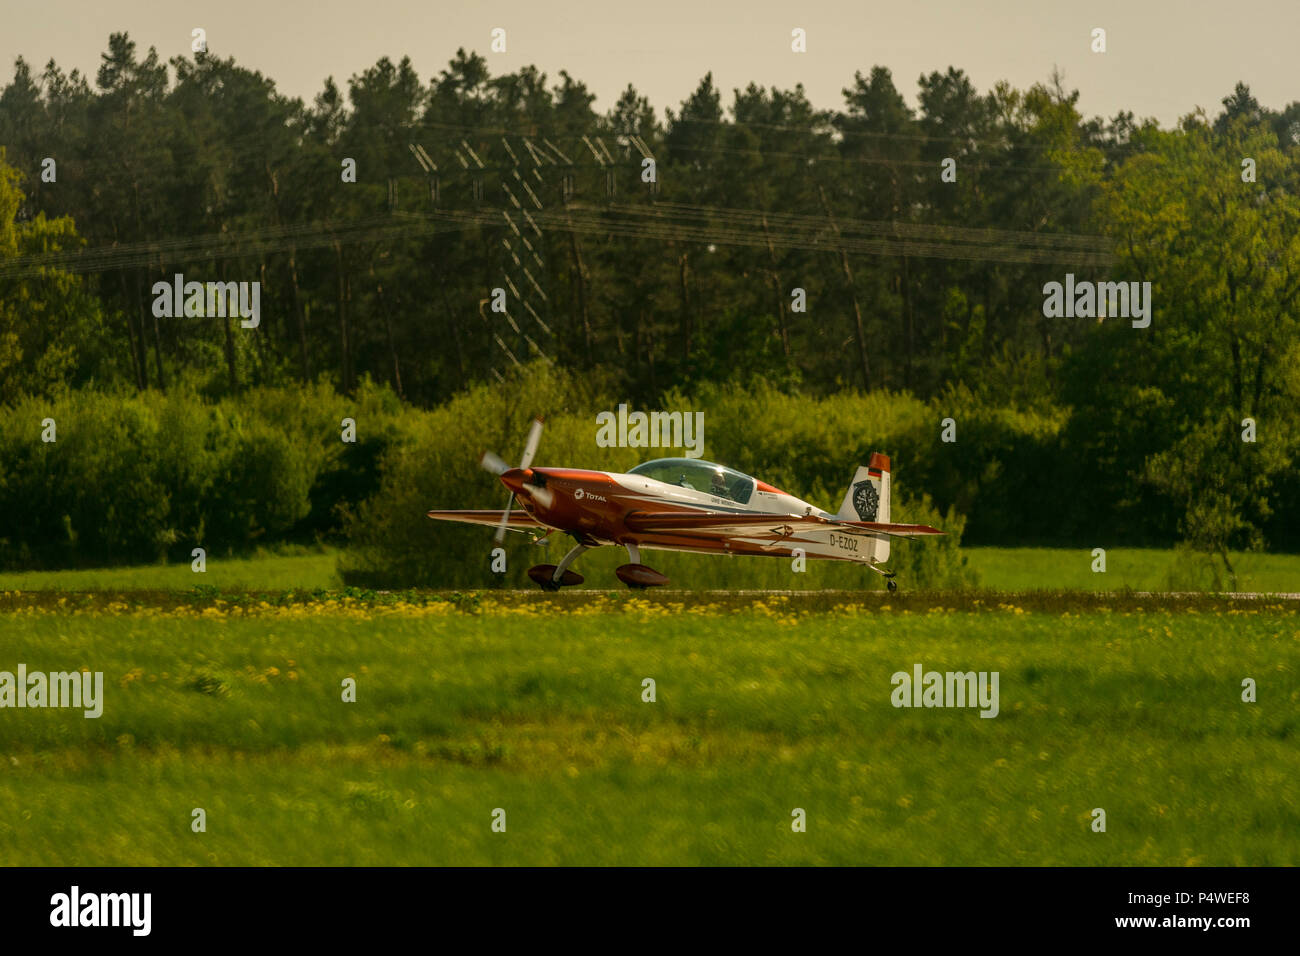 Uwe Wendt in his Extra 300L aeroplane on the runway of airport Schönefeld during the International Aerospace Exhibition ILA at airport Schoenefeld in  - Stock Image